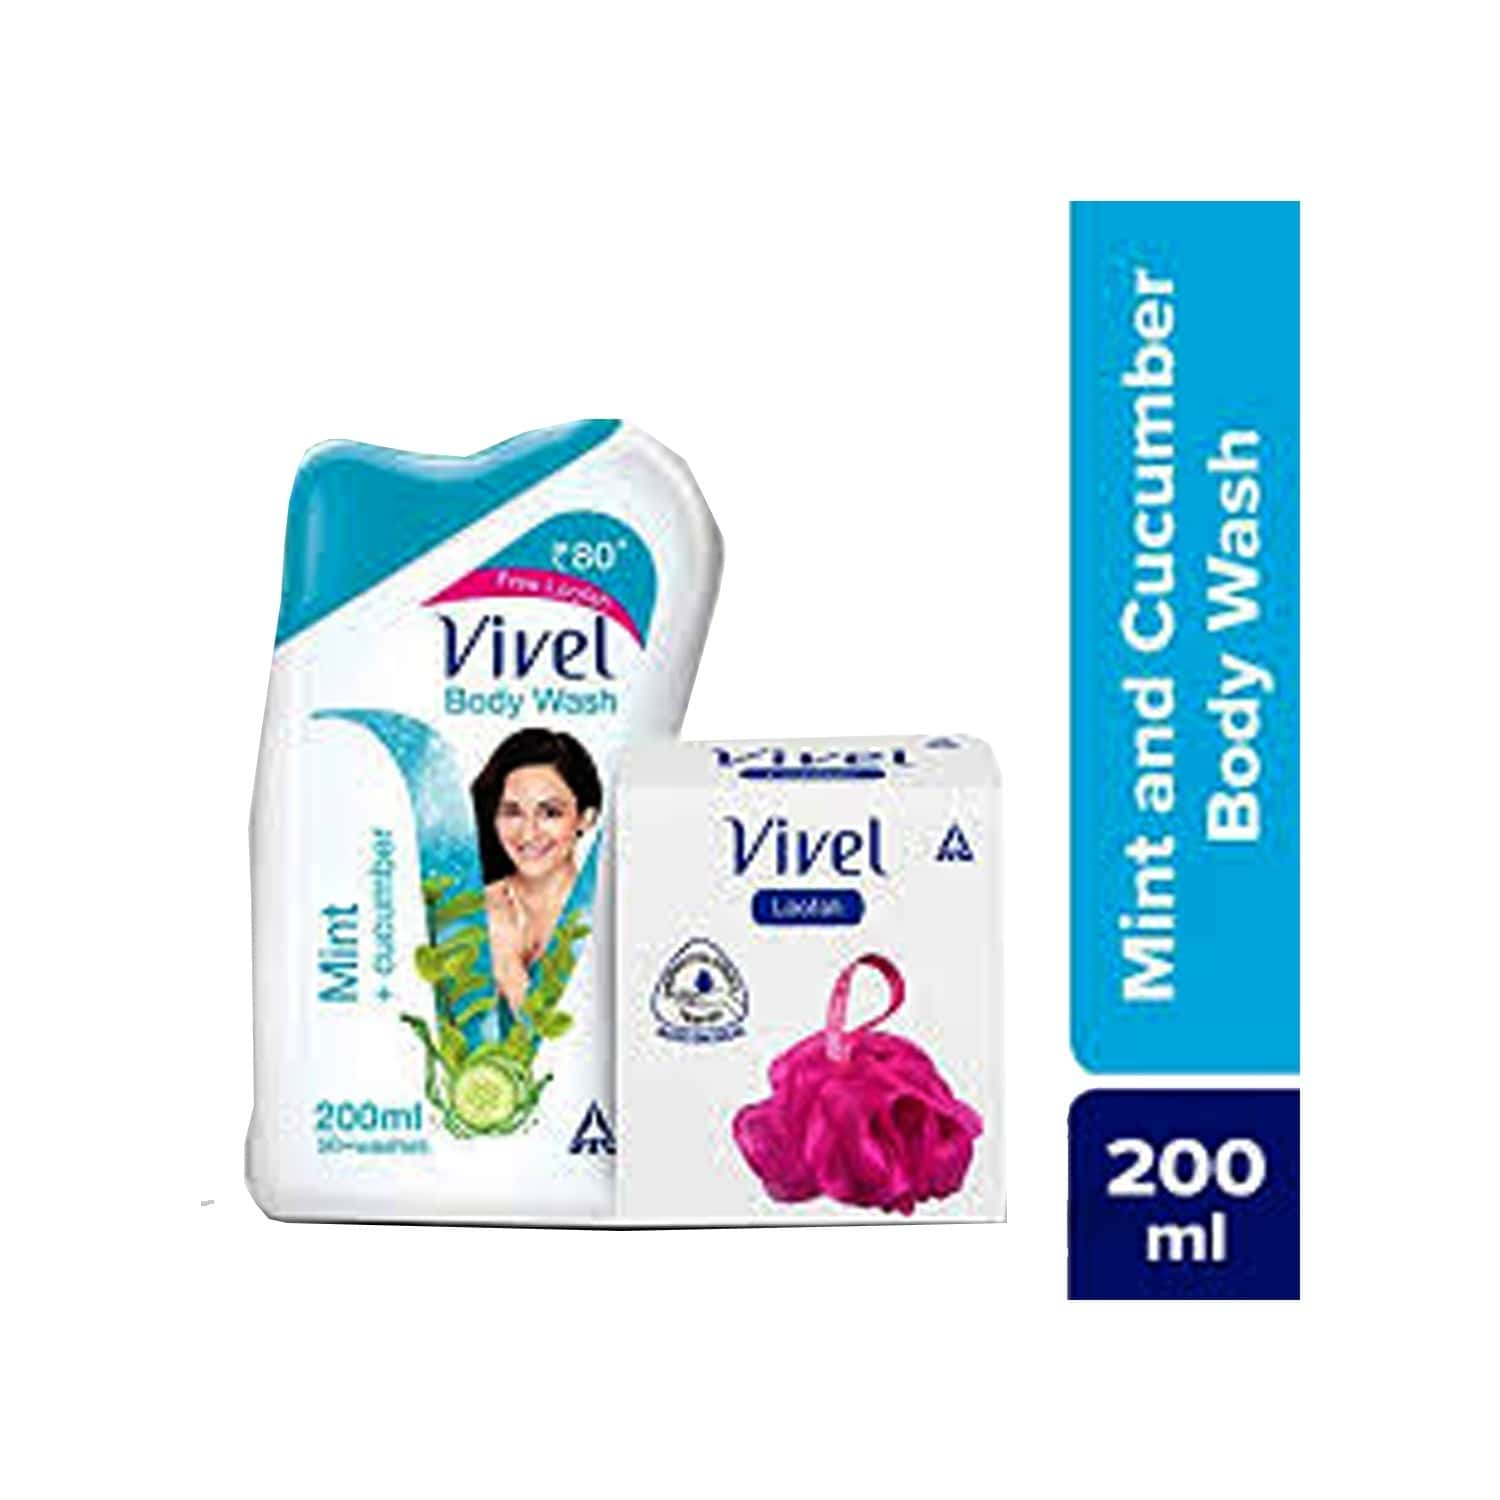 Vivel Mint And Cucumber Body Wash Bottle Of 200 Ml